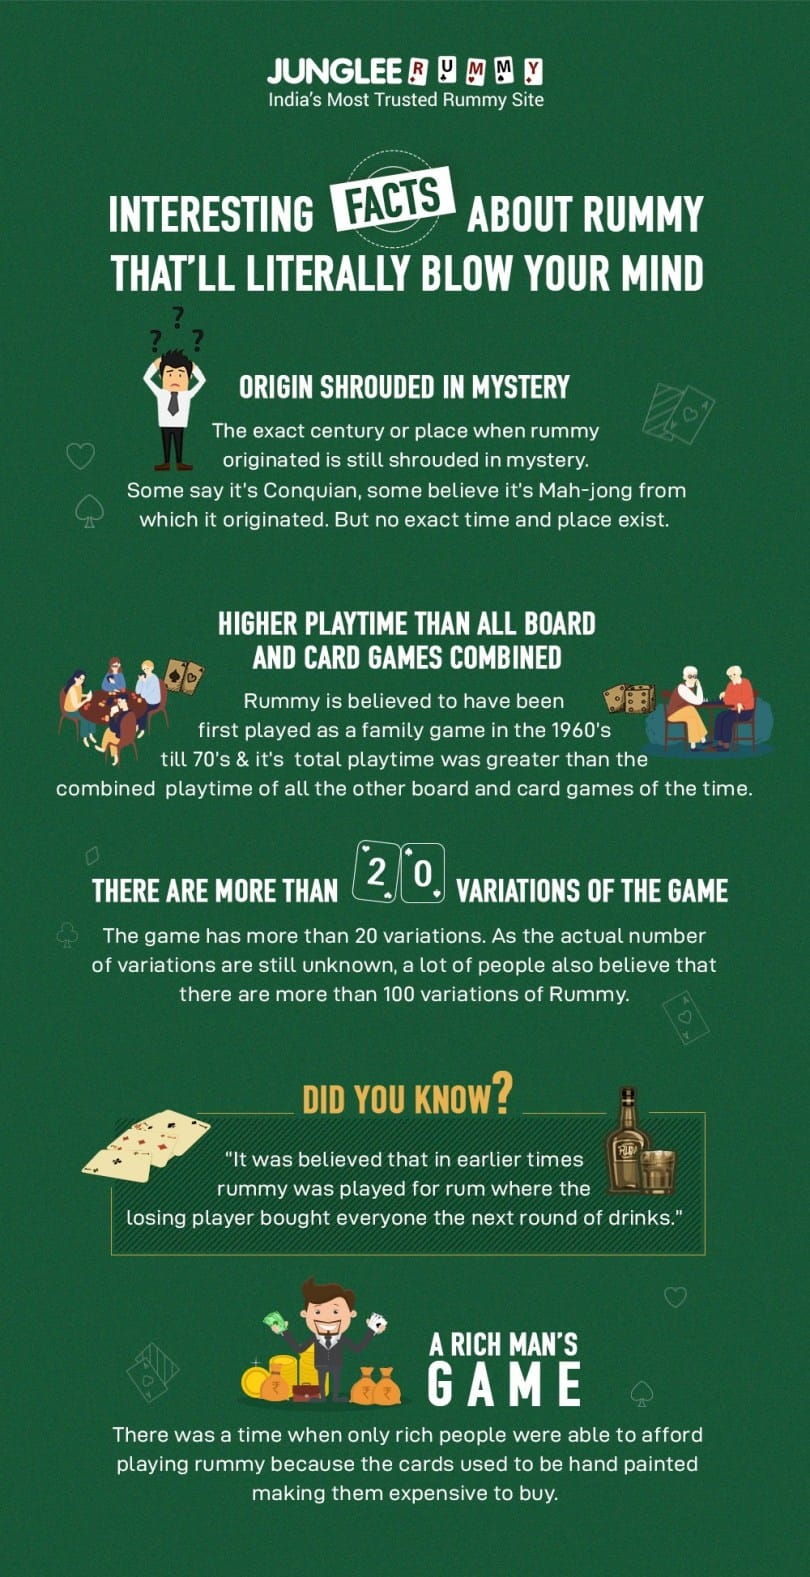 Interesting Facts About Rummy